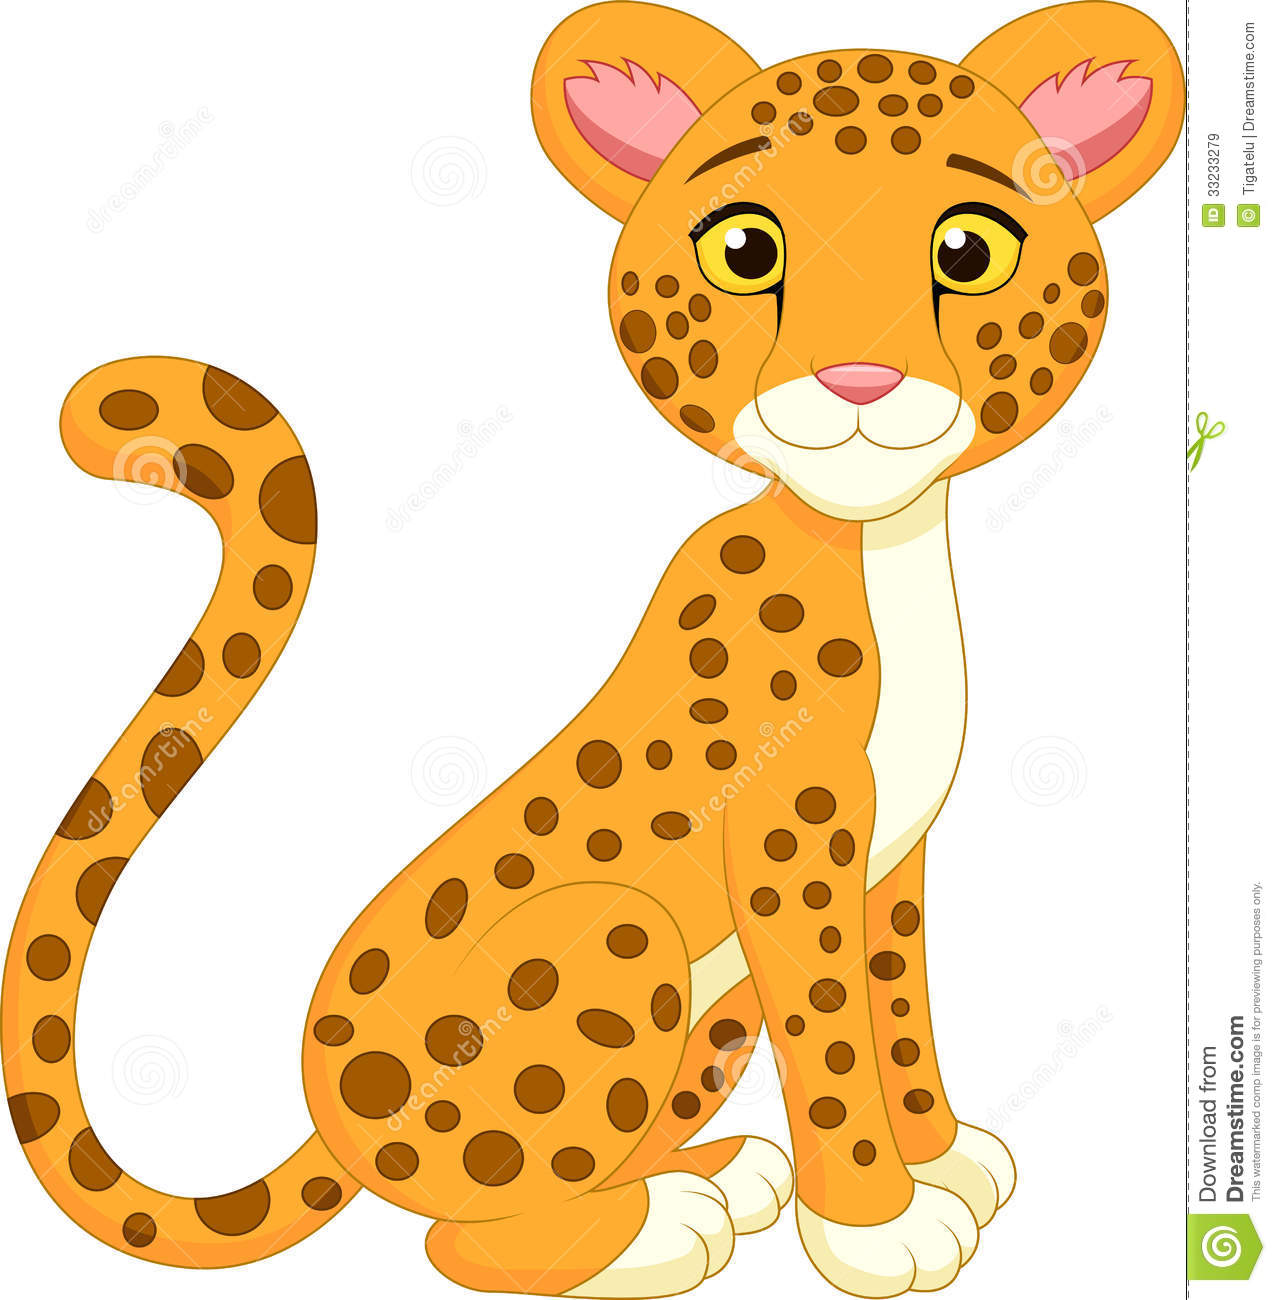 Cute Jaguar Clipart, Download Free Clip Art on Clipart Bay.